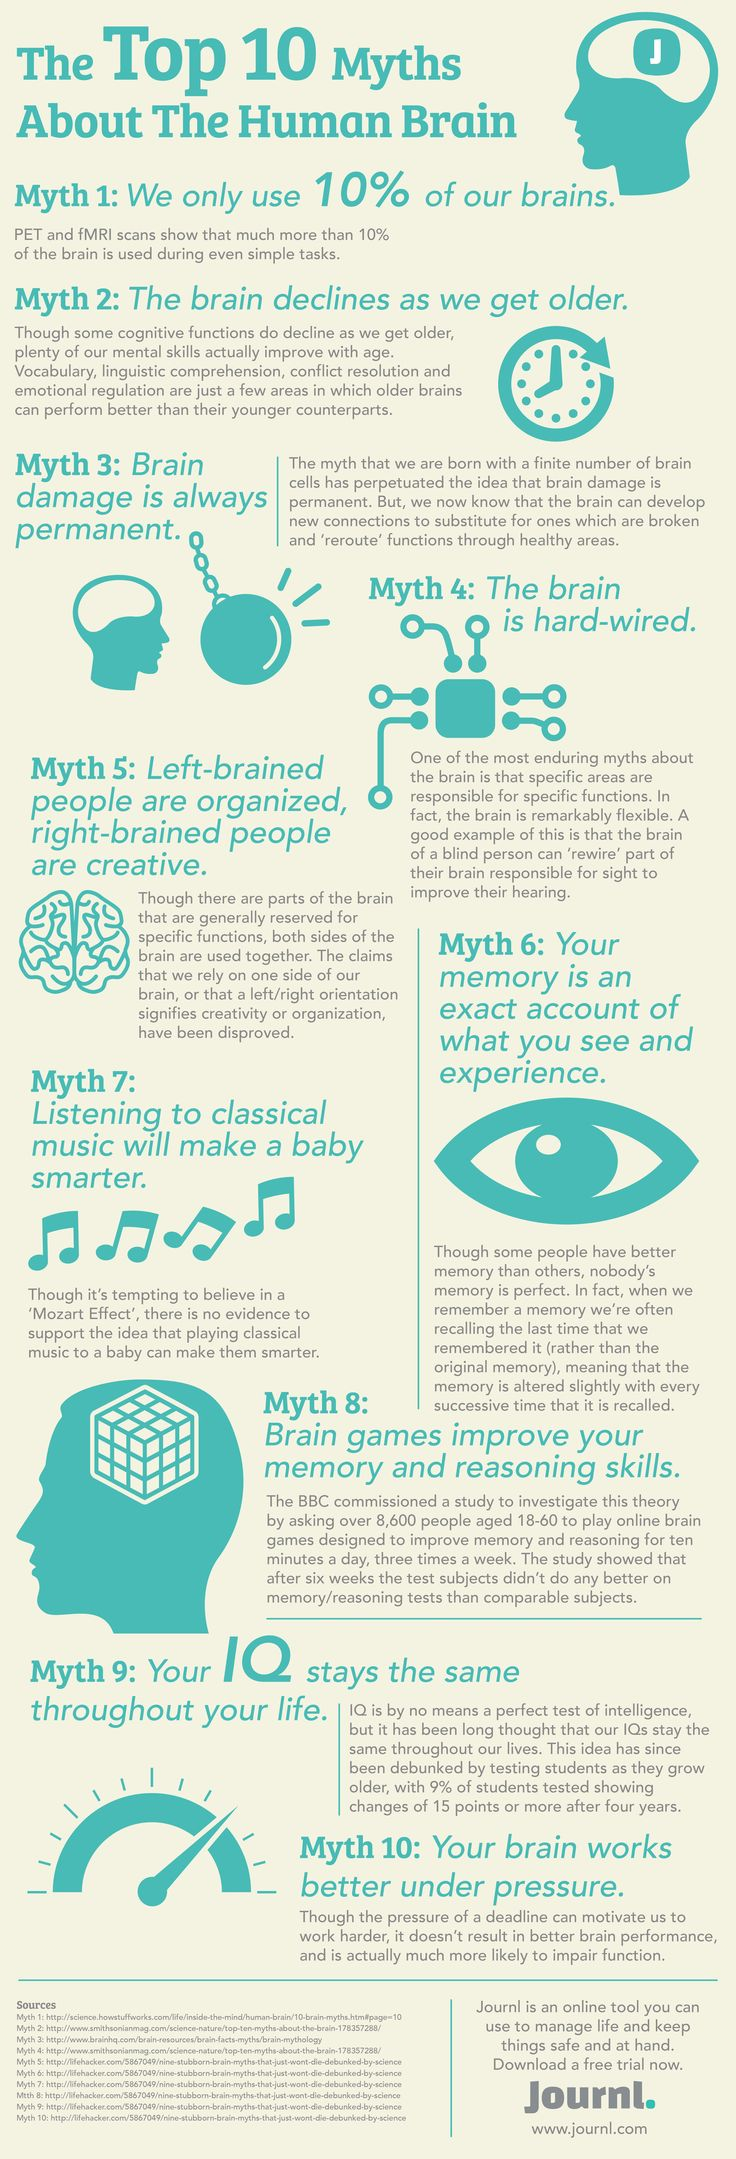 The Top 10 Myths About the Human Brain